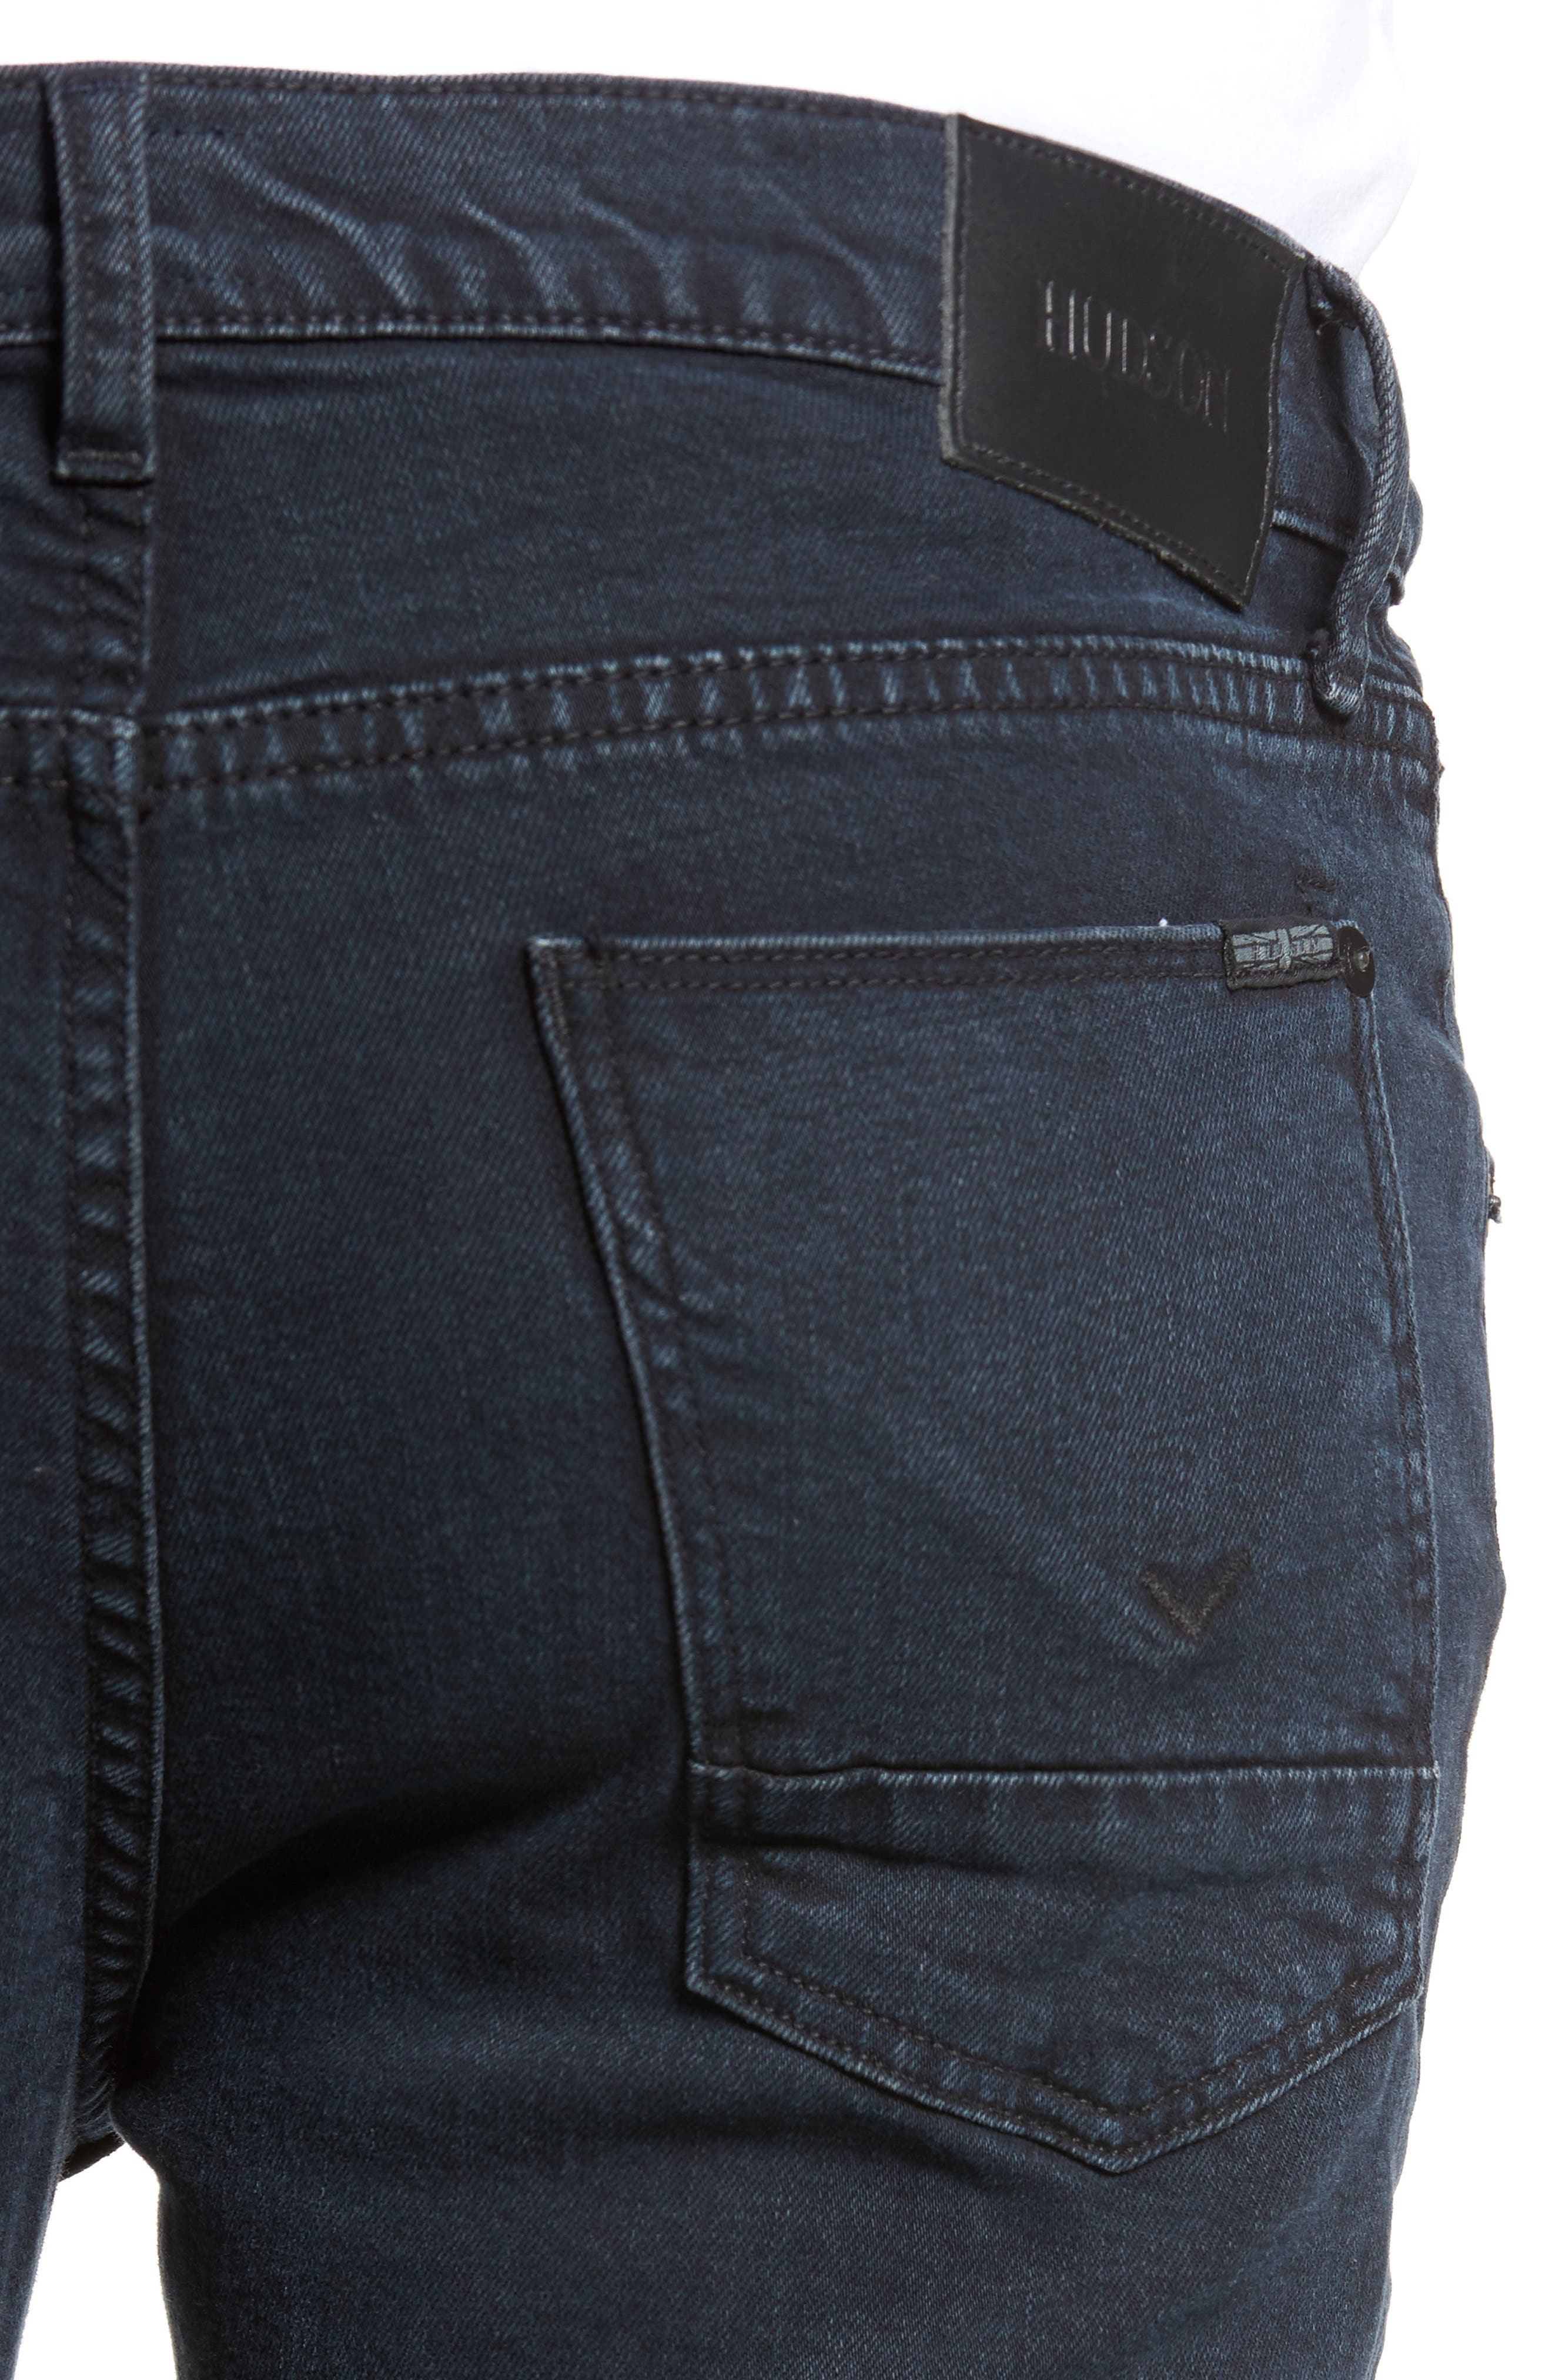 Axl Skinny Fit Jeans,                             Alternate thumbnail 4, color,                             Sight Unseen